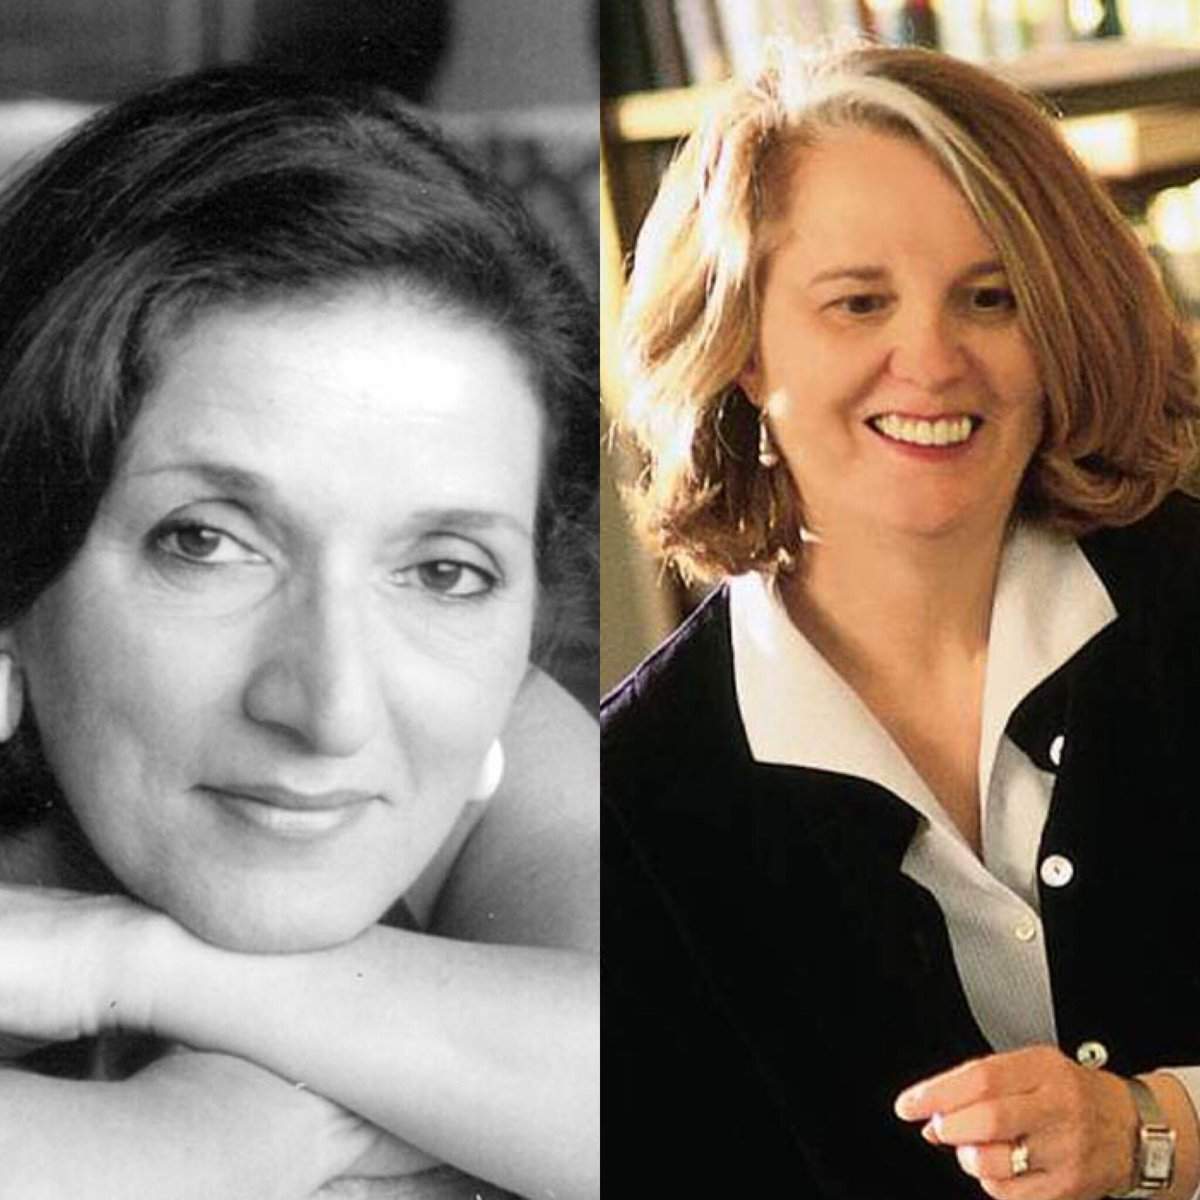 This summer, join us in Italy, and discuss the craft of #writing with award-winning authors #lynnfreed and #patriciahampl pic.twitter.com/SZB4YdutQK